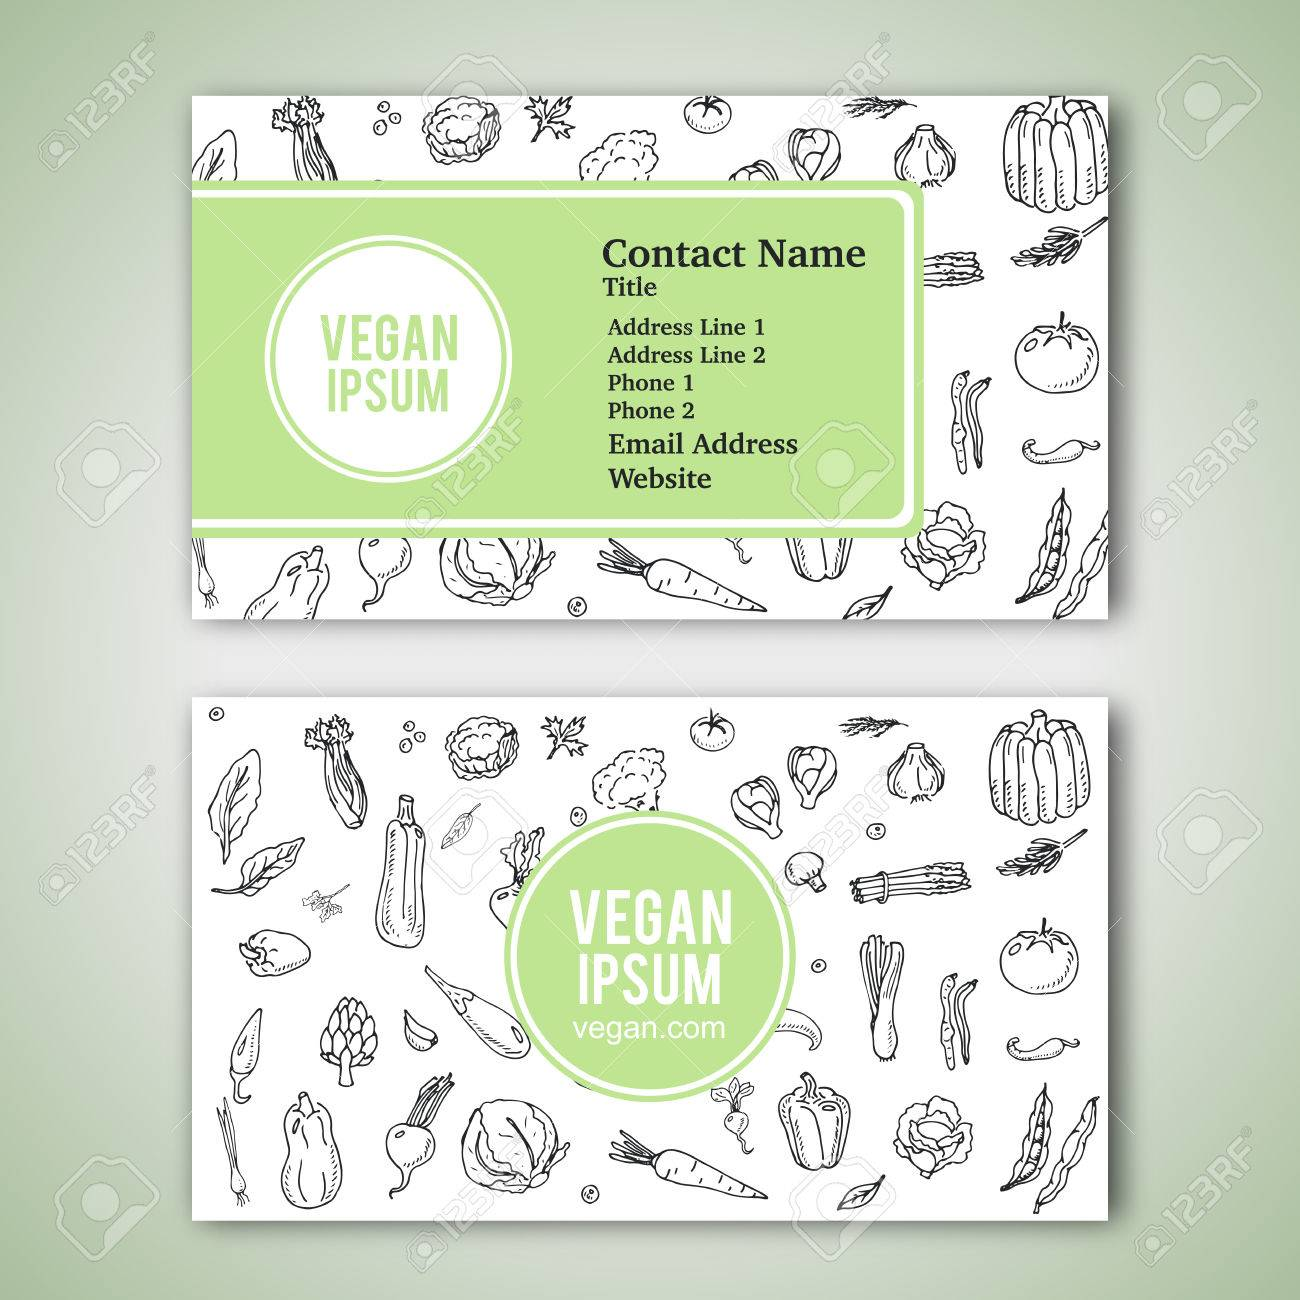 Business cards template with hand drawn doodle vegetables icons business cards template with hand drawn doodle vegetables icons for vegan shop or restaurant vector reheart Gallery